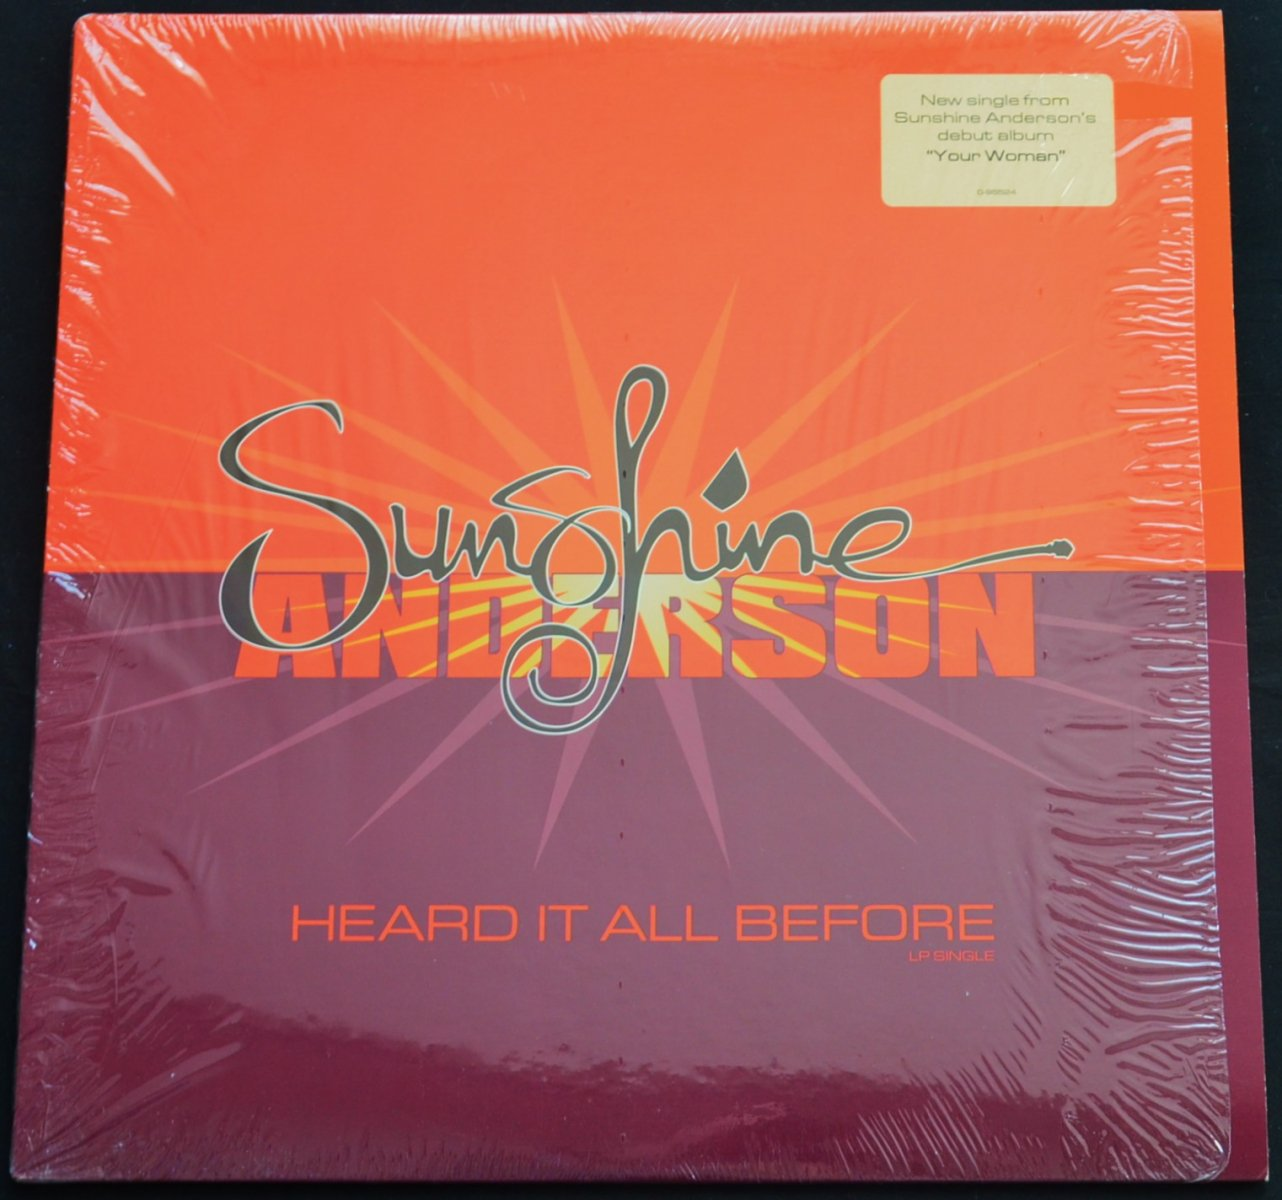 SUNSHINE ANDERSON / HEARD IT ALL BEFORE (12